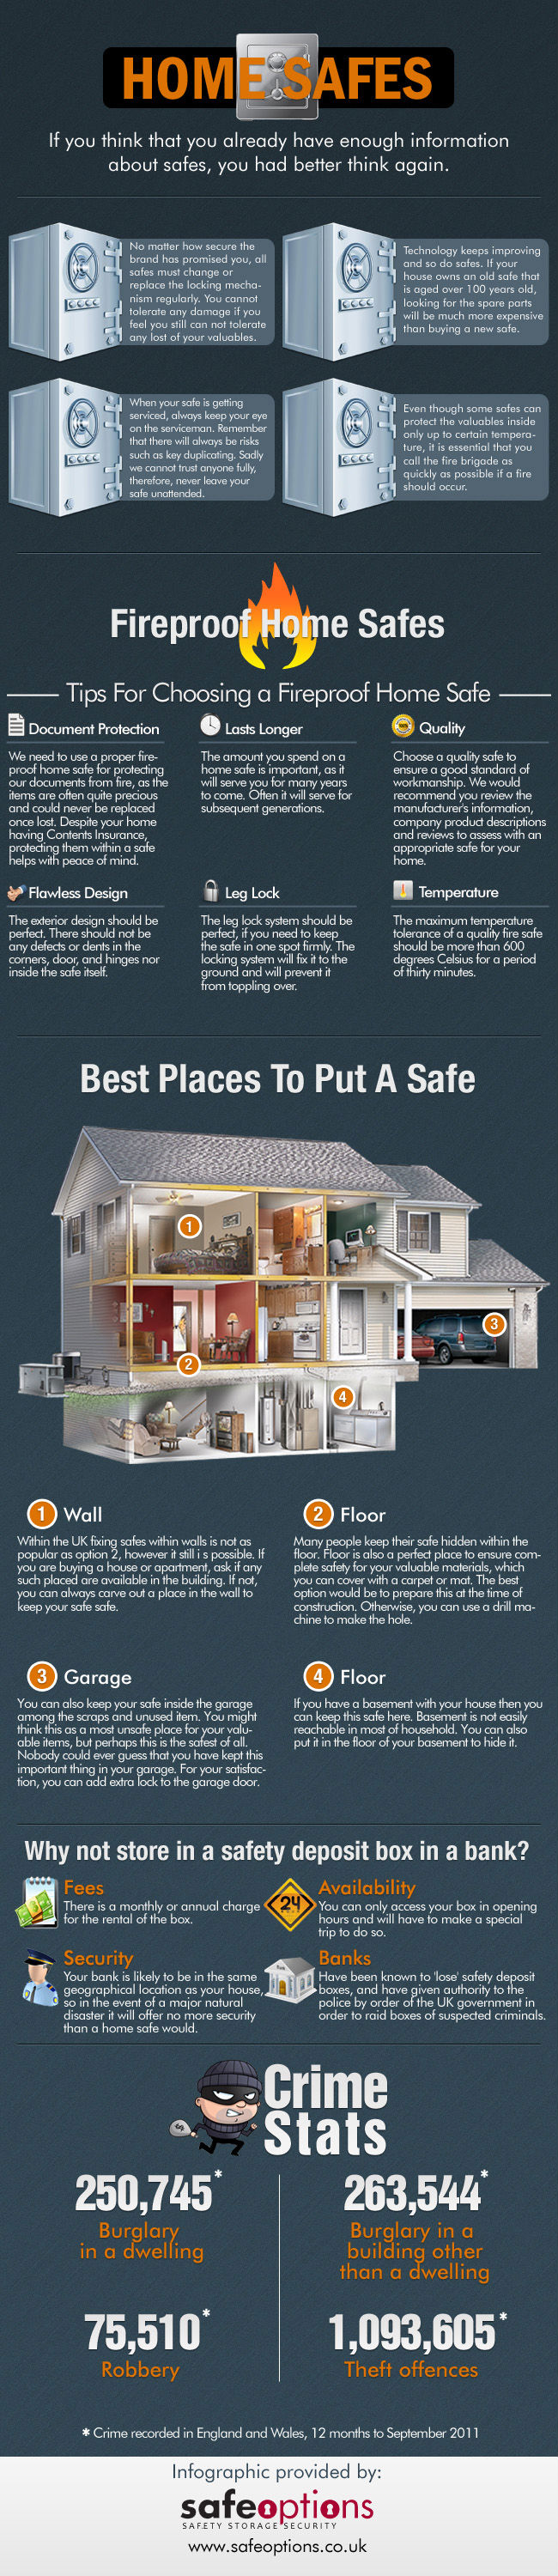 Home Safes – Everything You Didn't Know (Infographic)